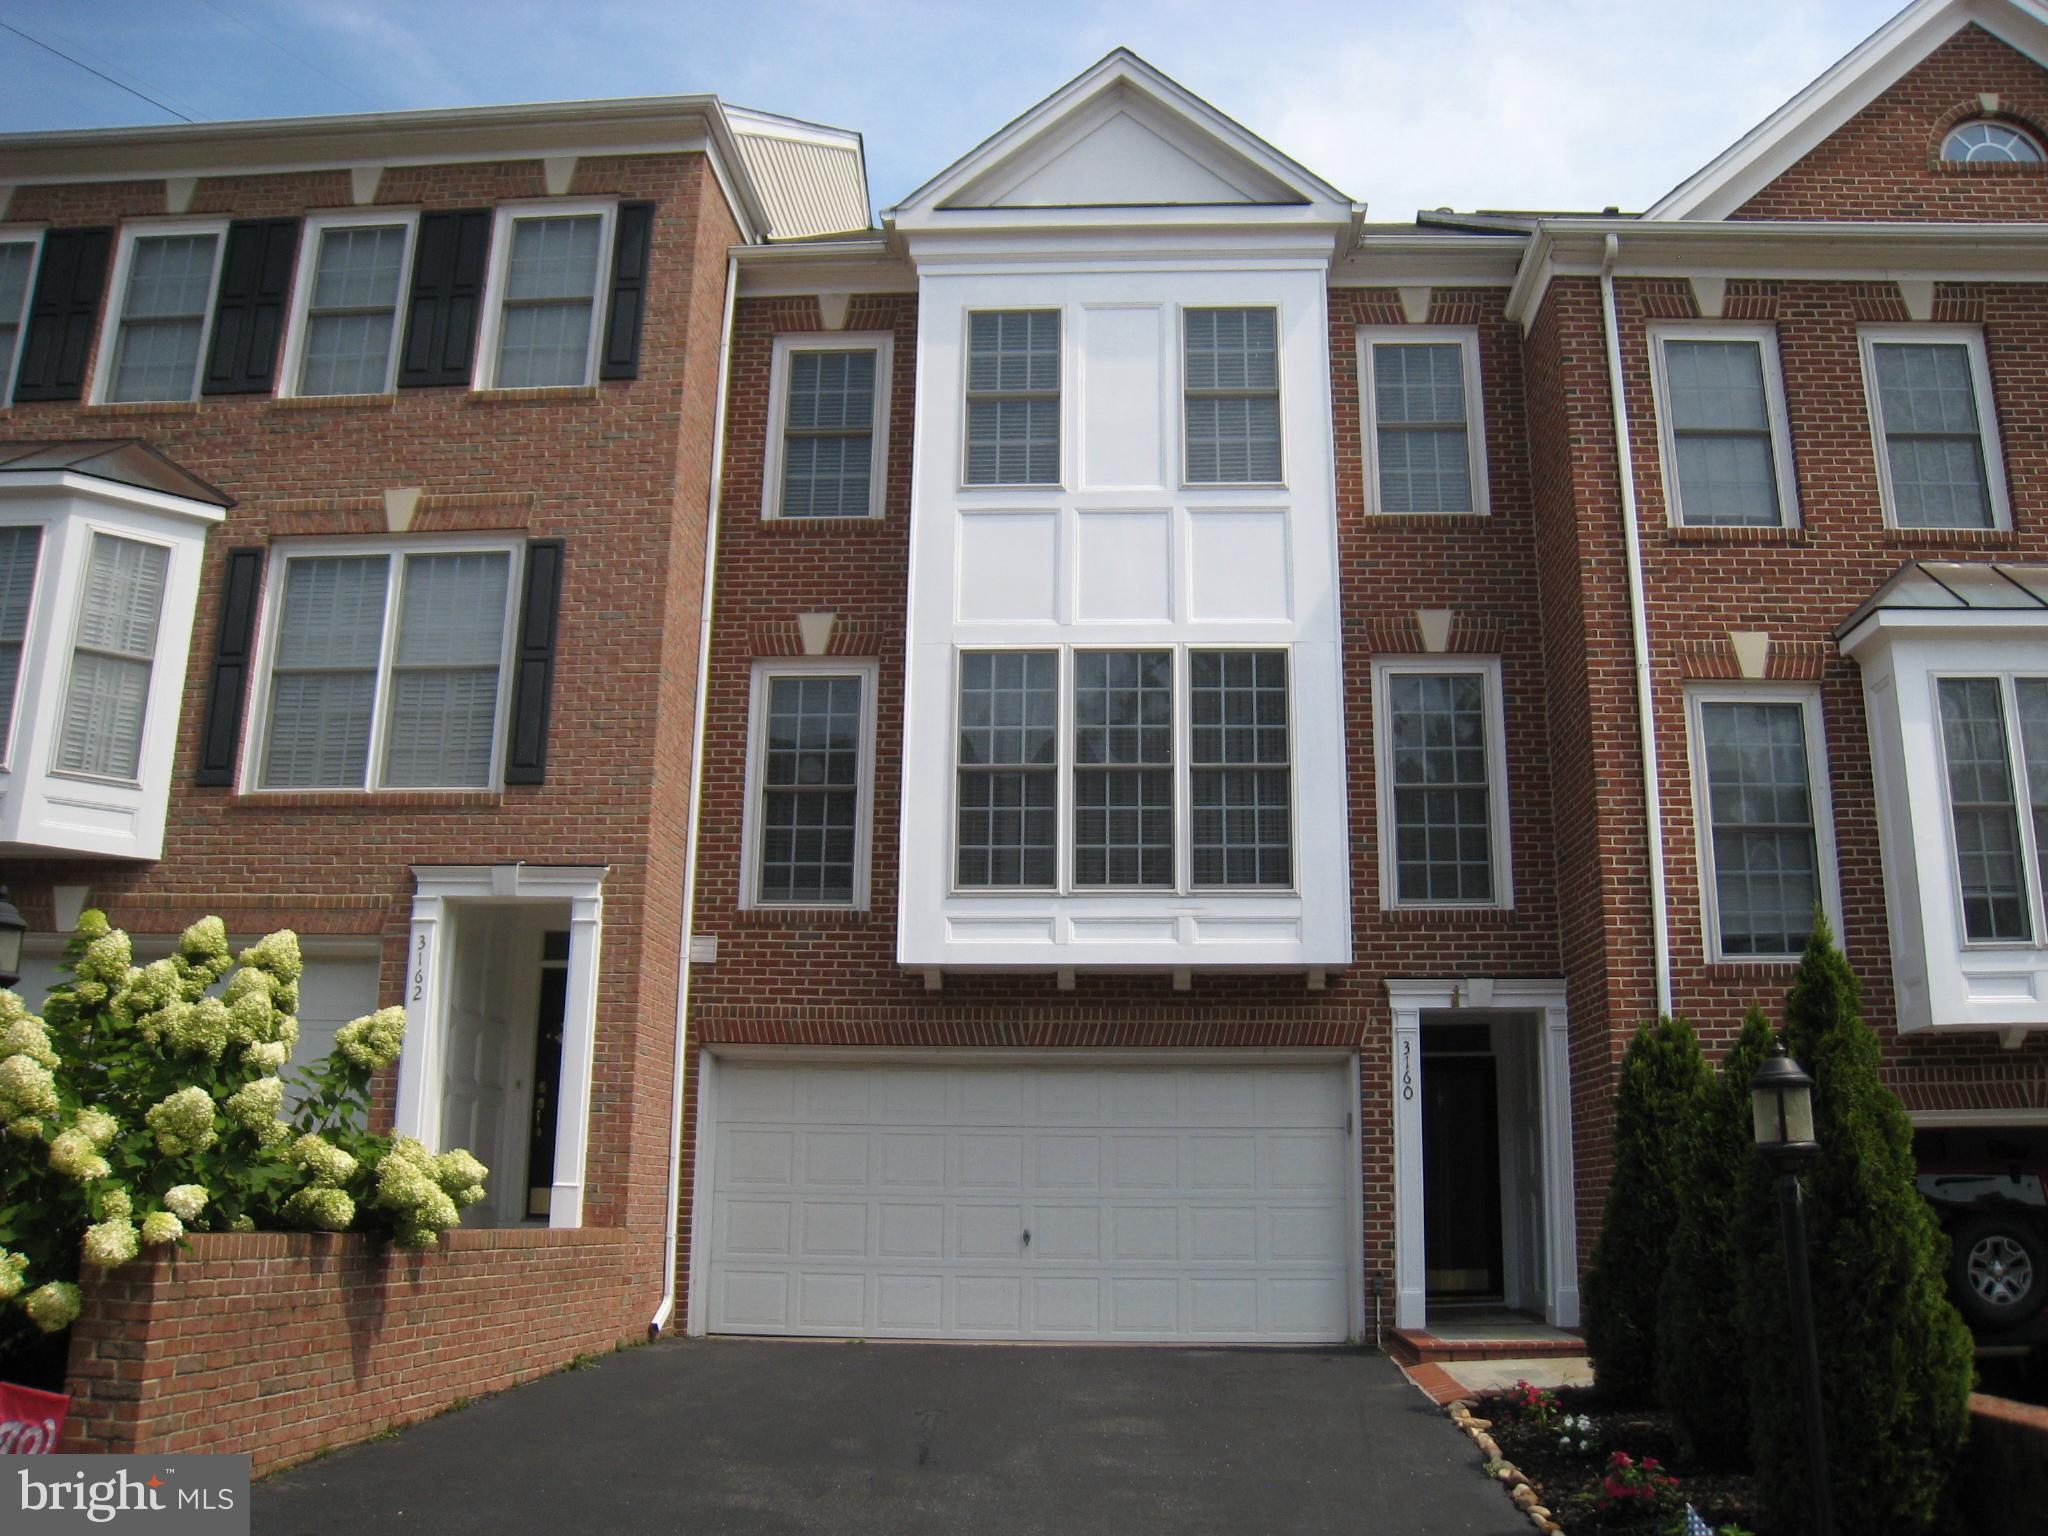 Beautiful super-townhouse 3 Bedrooms, 2.5 Bathrooms, partial furnished. Minutes from Washington DC, and easy access to transit including buses, Metro, and I-495. Huge deck backing to trees, Palladian windows in LR, hardwood floors, cherry cabinets, granite counters, gas fireplace, walk-out brick patio, & 2-car garage. Playground, tennis court, dog run, & trail within community.